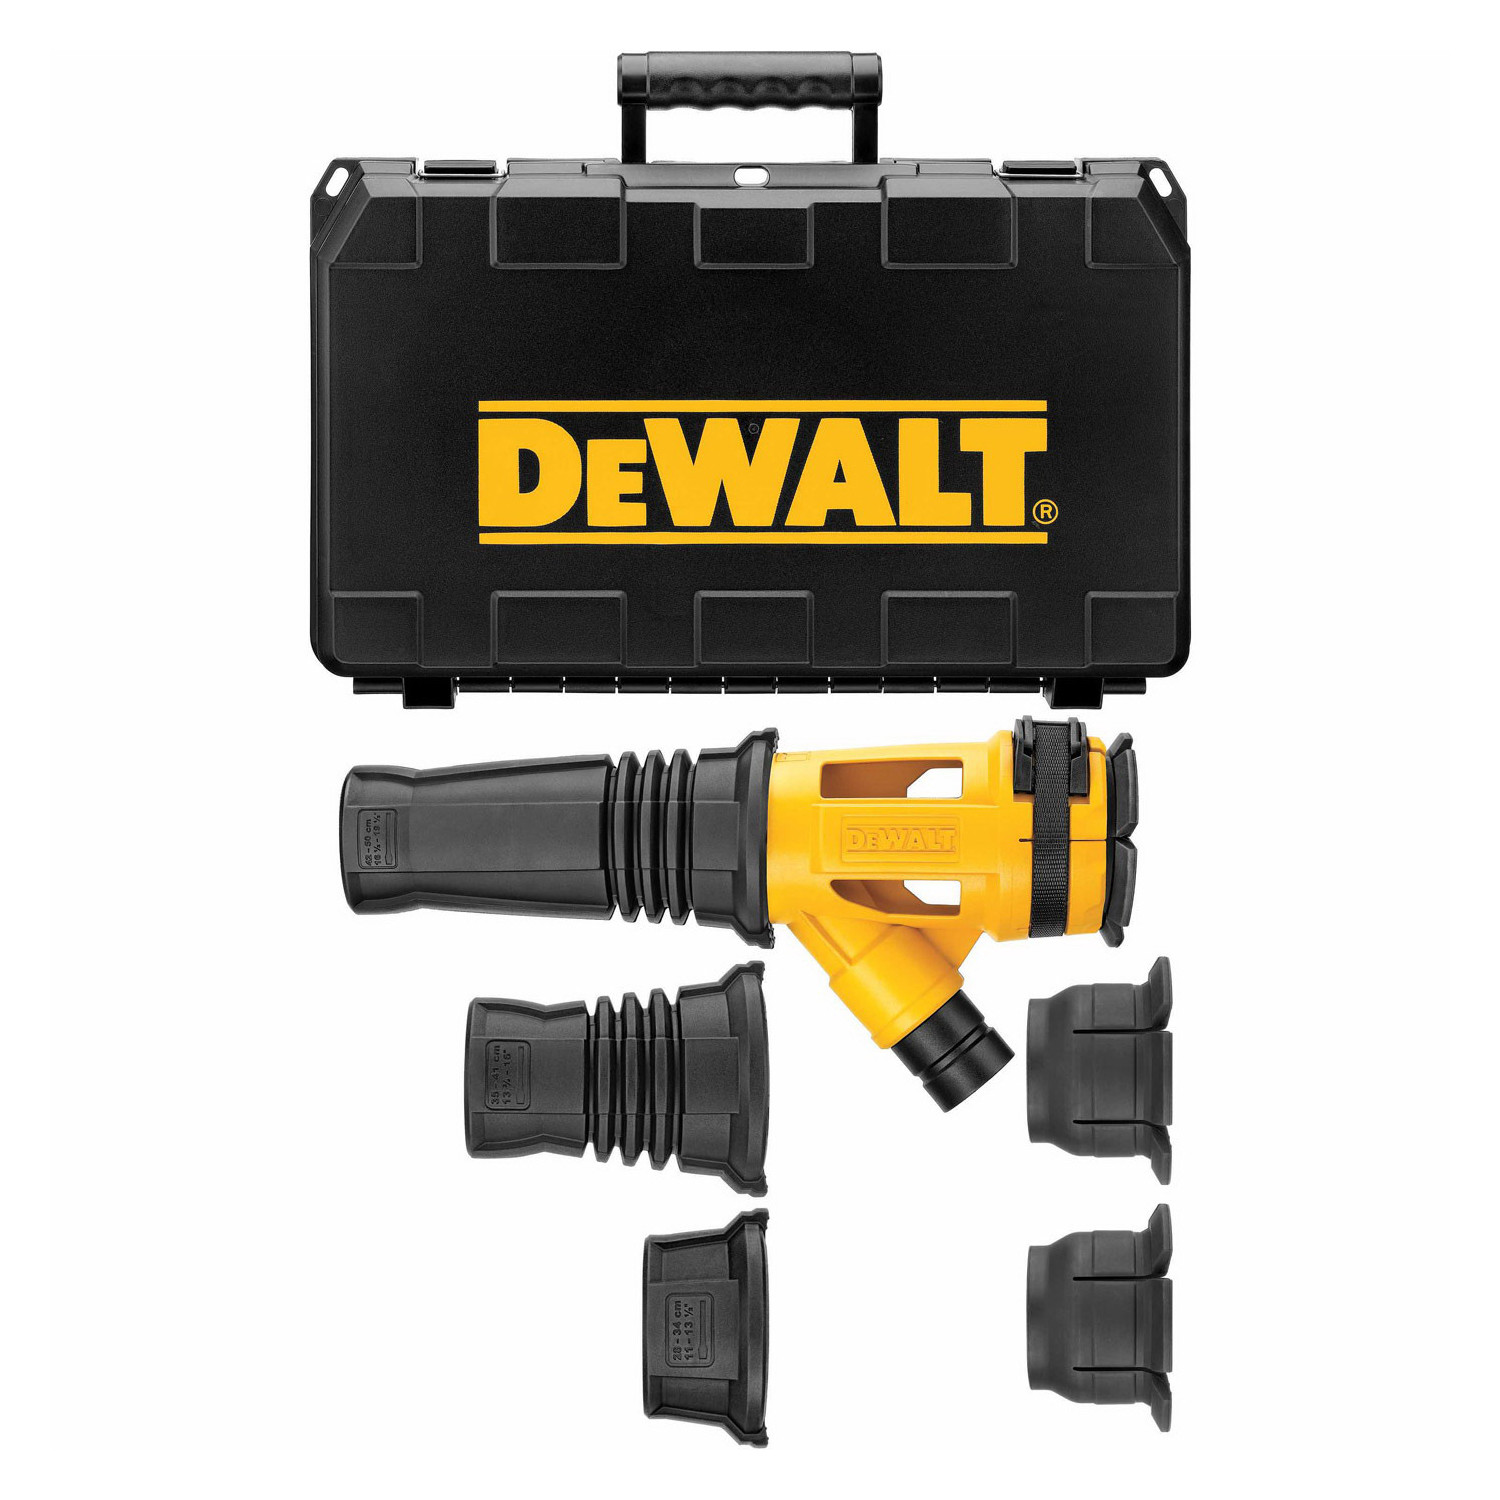 Dewalt Dust Extractor >> Dewalt Dwh053k Dust Extractor 1 3 4 In Hose Dia For Use With Sds Max Hex Combo Hammers And Breakers Black